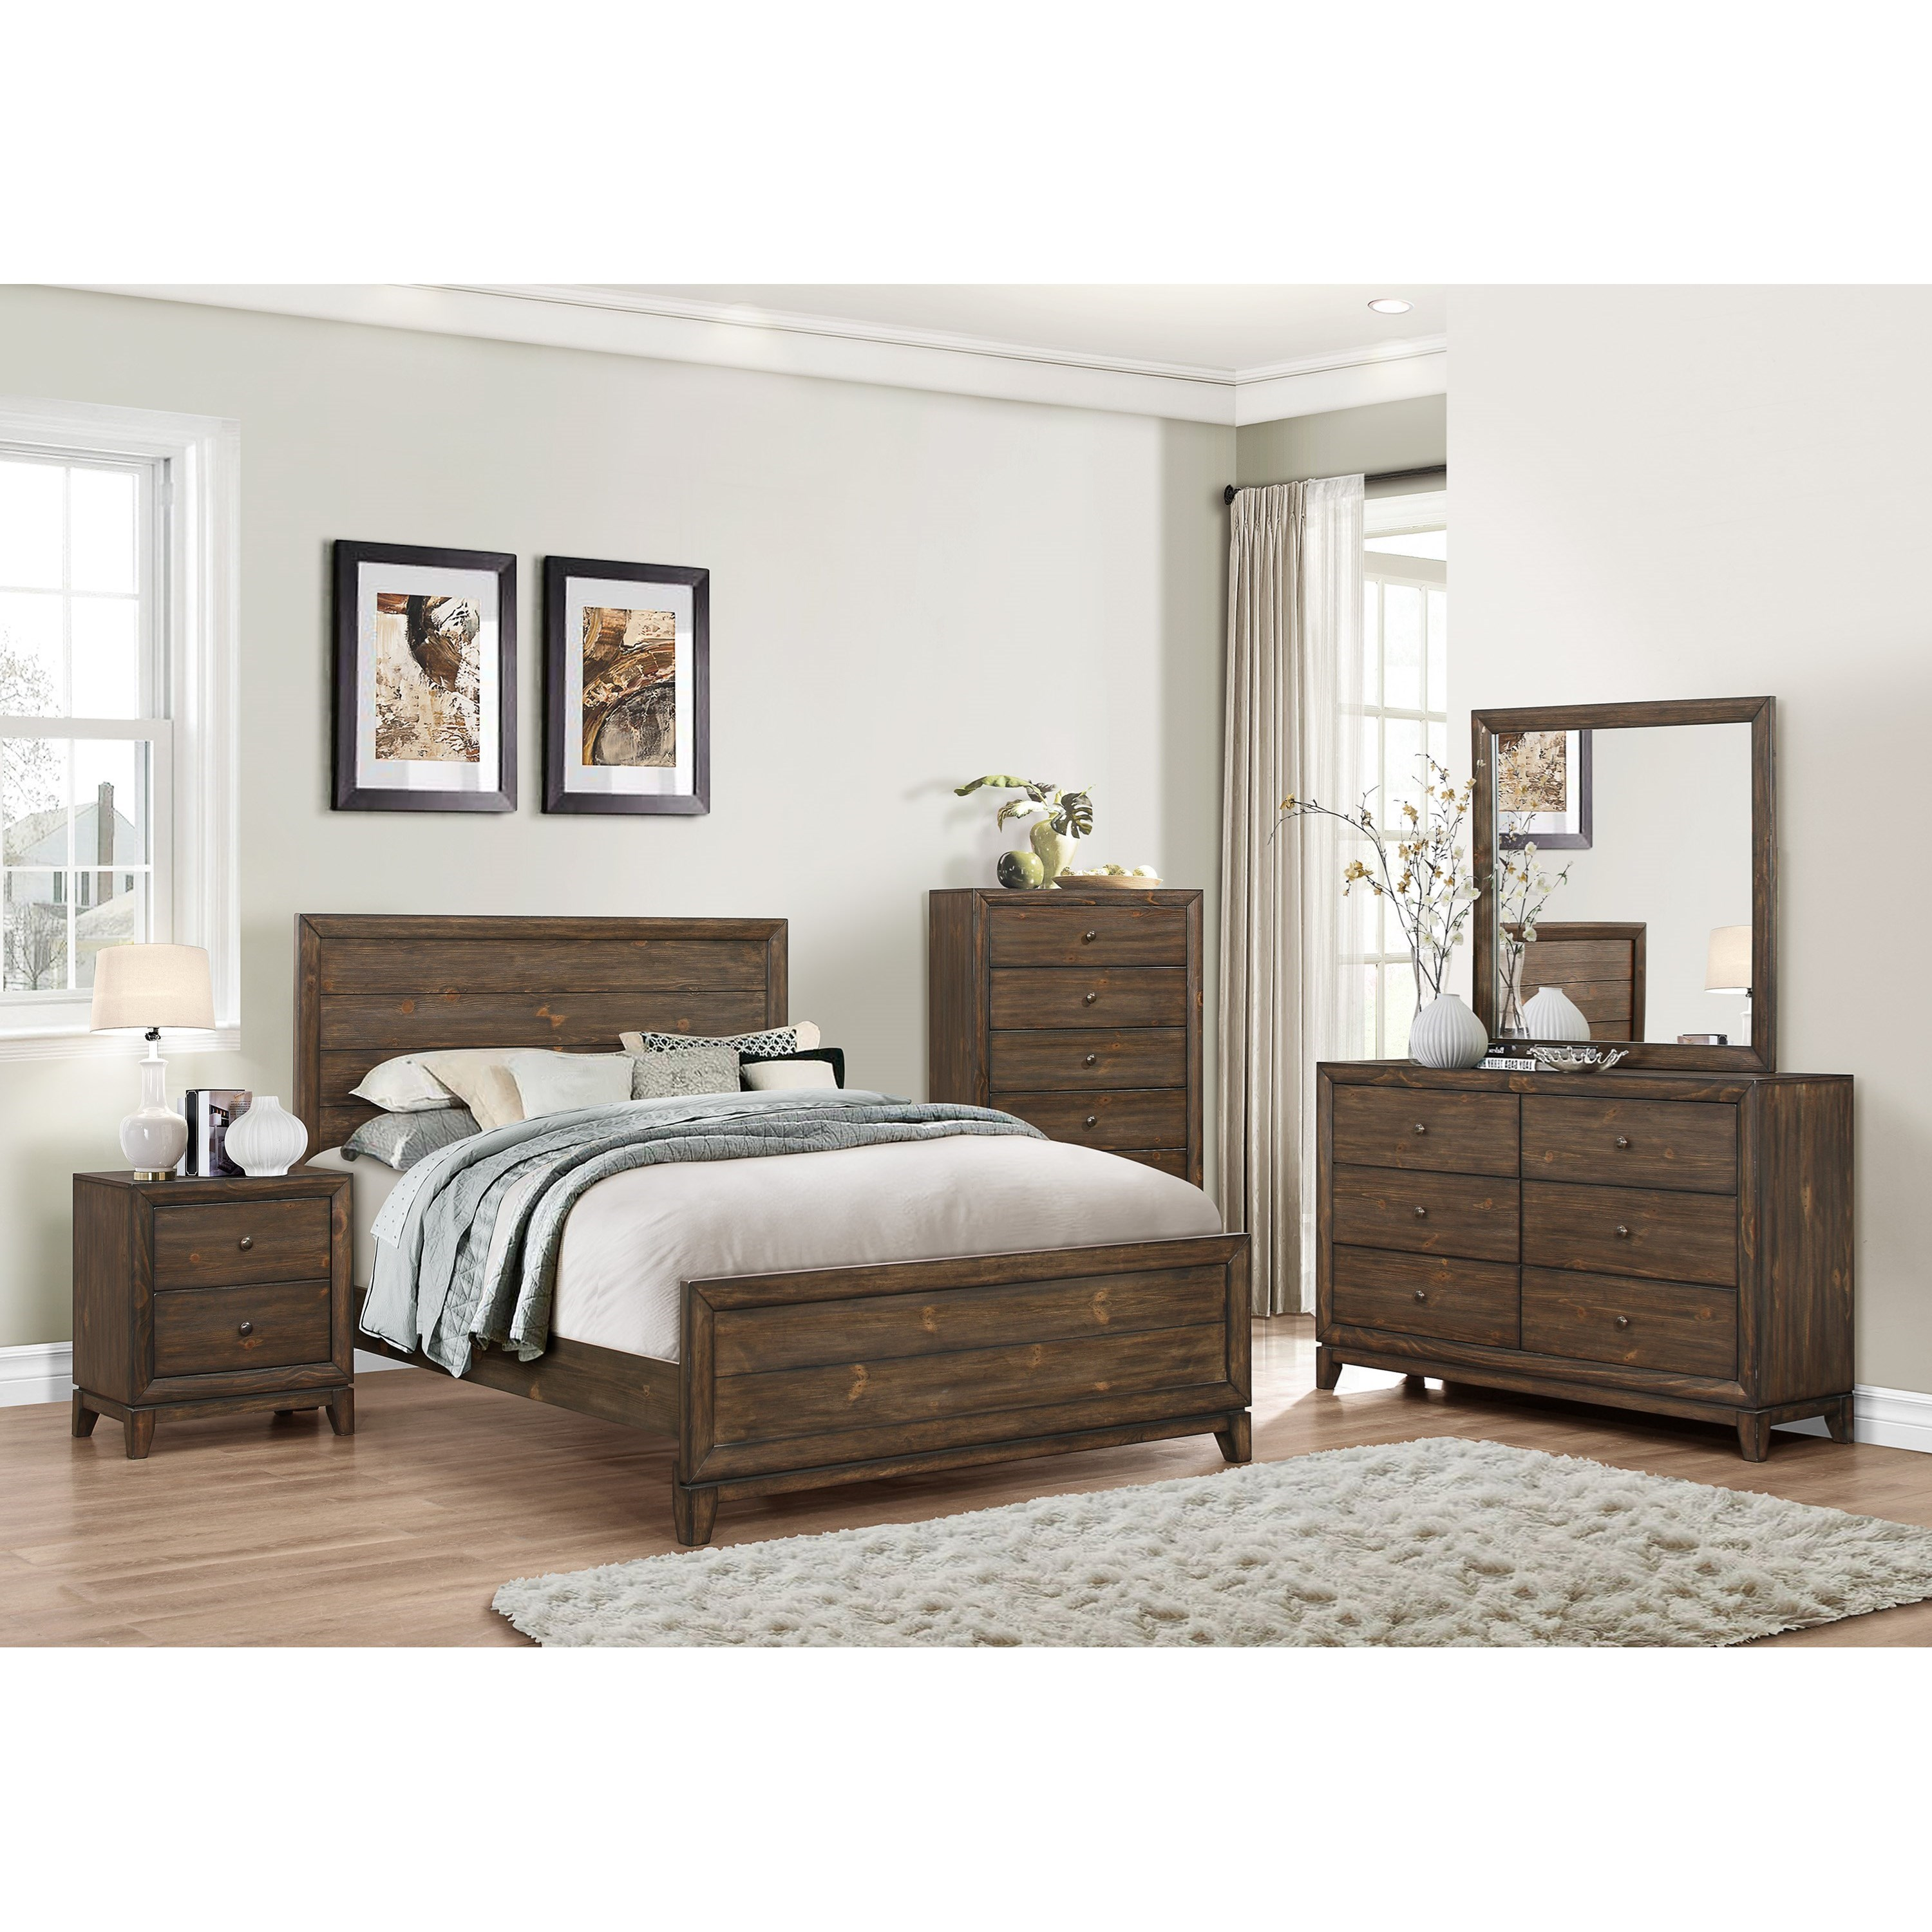 Crown mark rhone king bedroom group dunk bright for Bedroom furniture groups